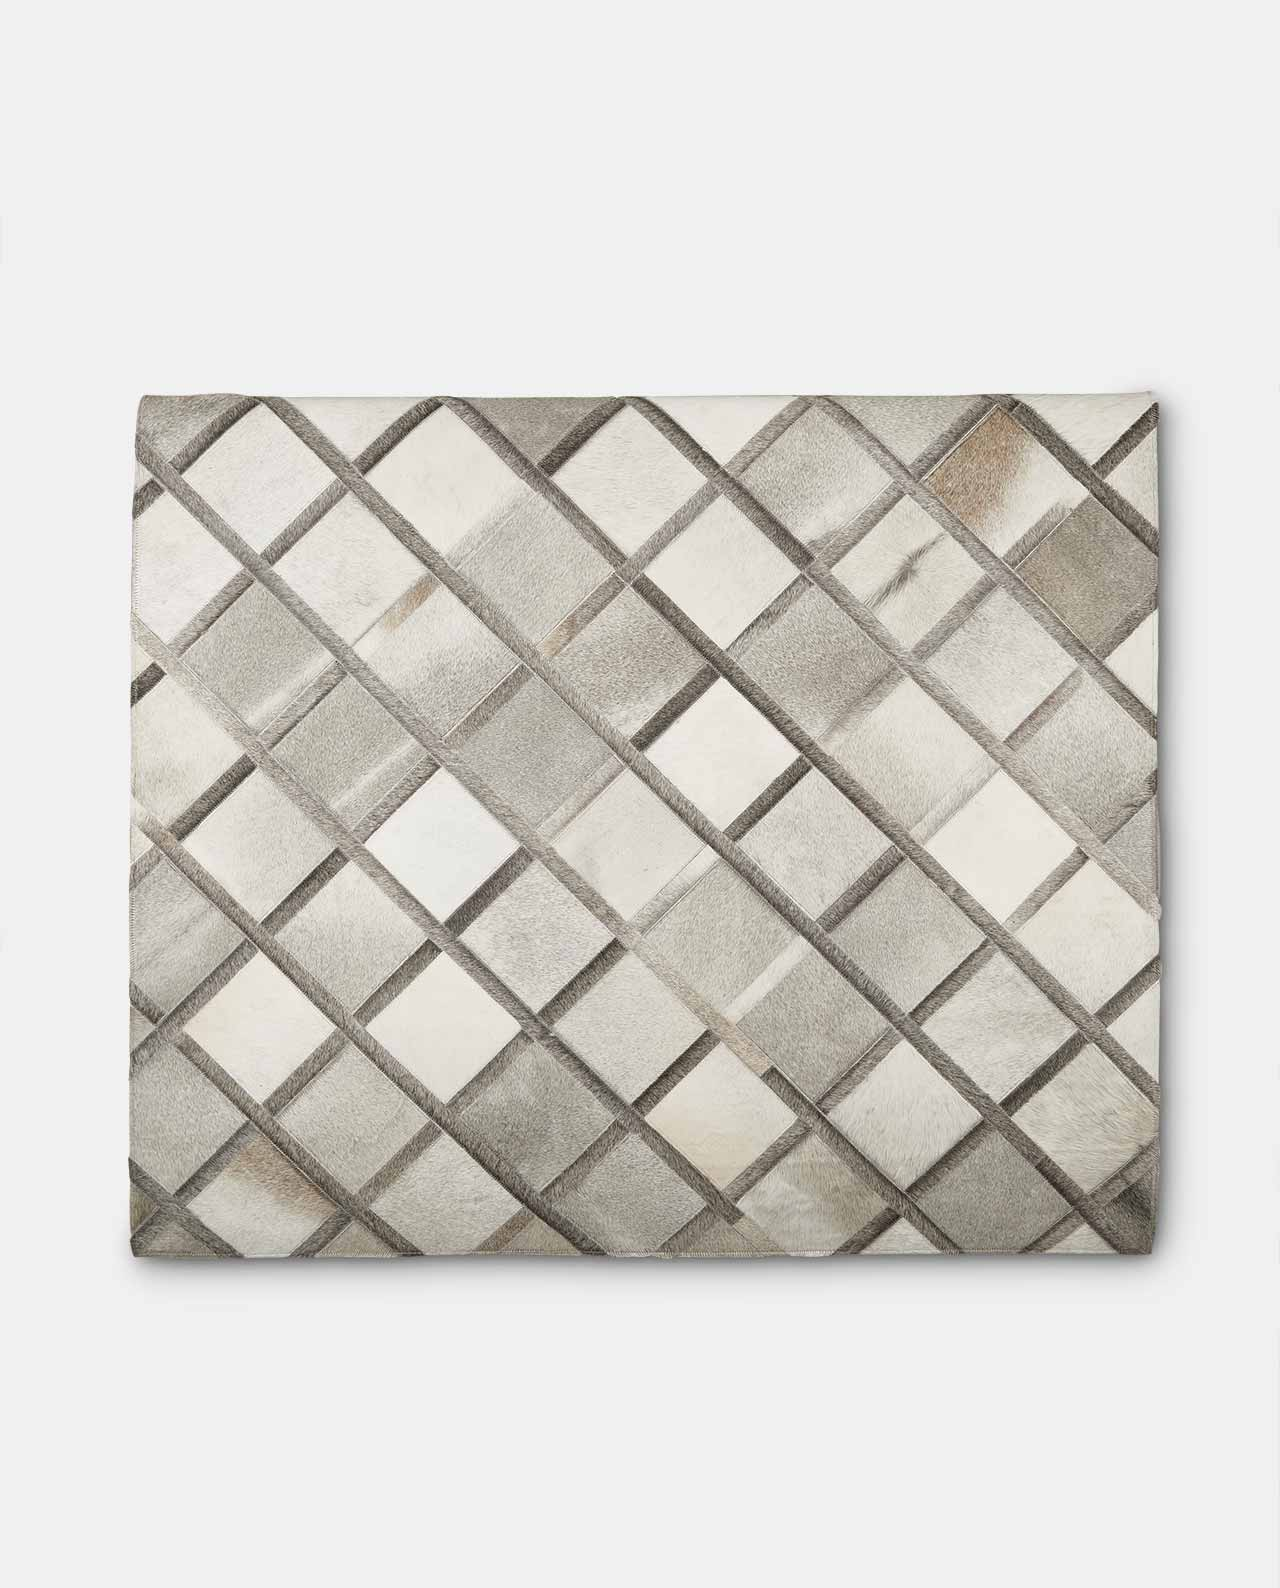 Charcoal Cowhide Leather Rug